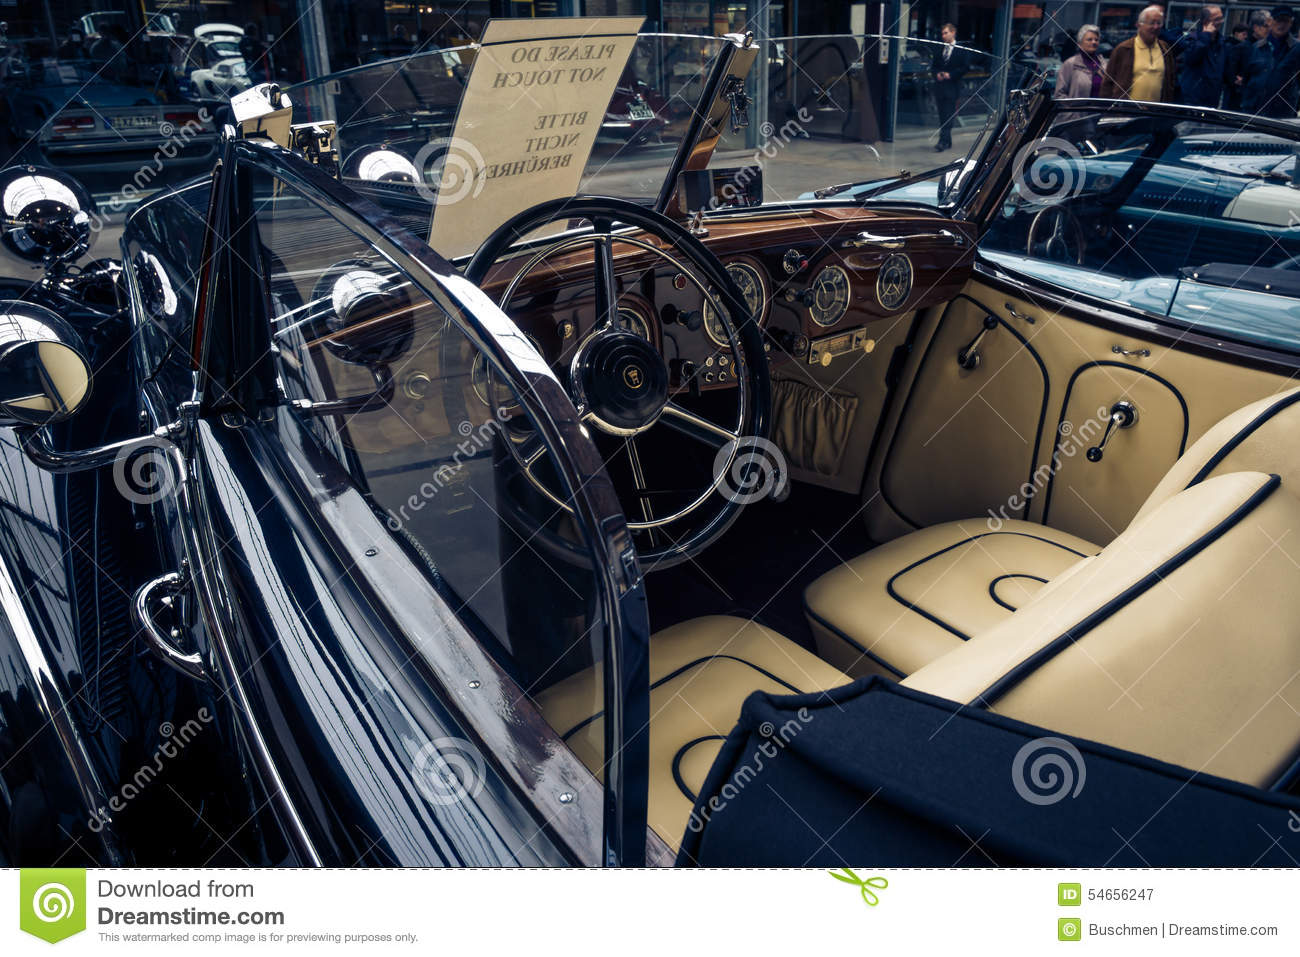 le conducteur et le passager de la voiture horch 853a de vintage fol trent le cabriolet. Black Bedroom Furniture Sets. Home Design Ideas